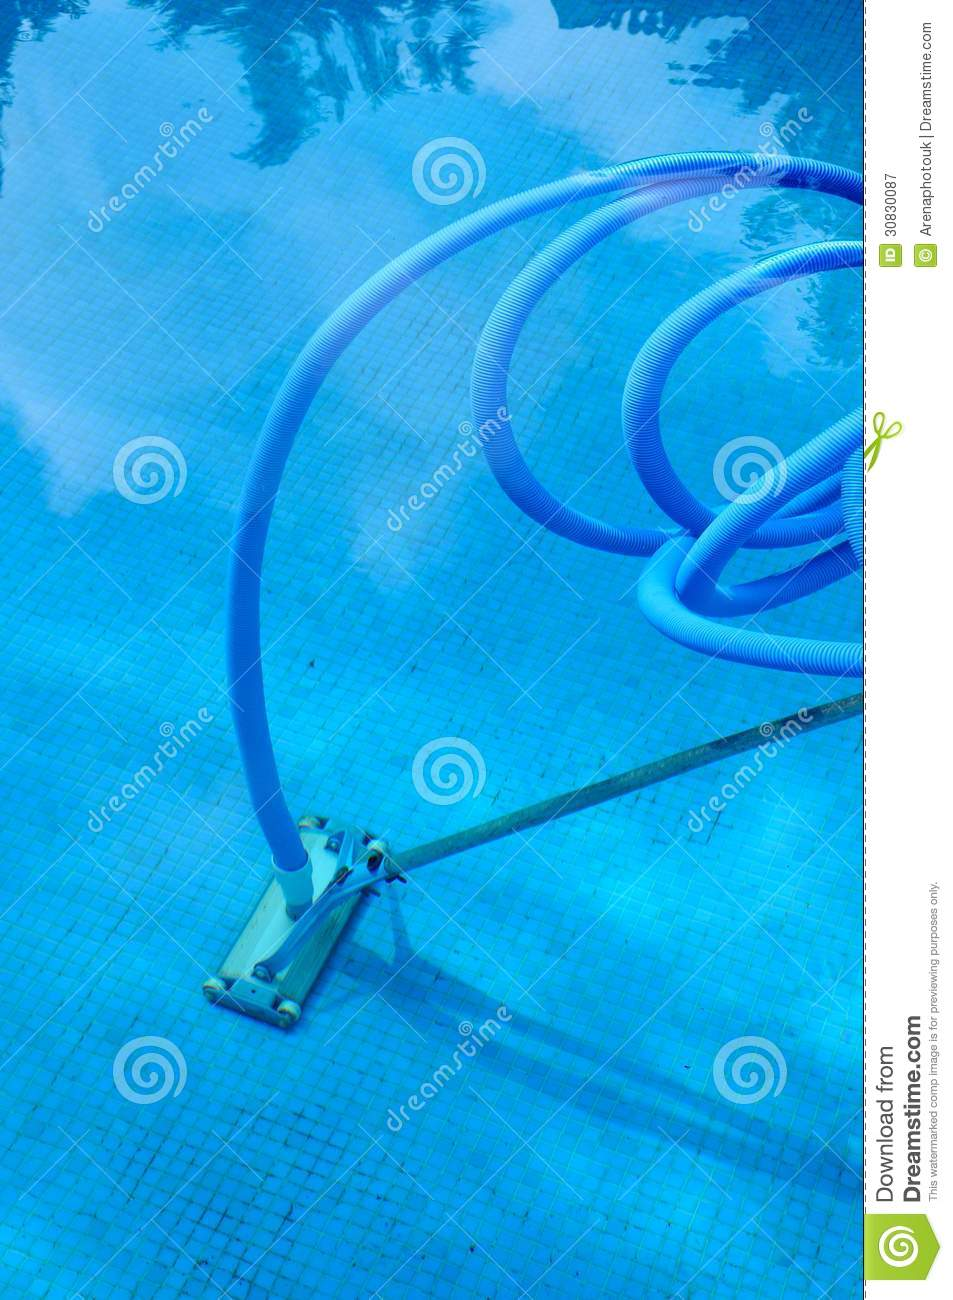 Pool Cleaning Royalty Free Stock Photography Image